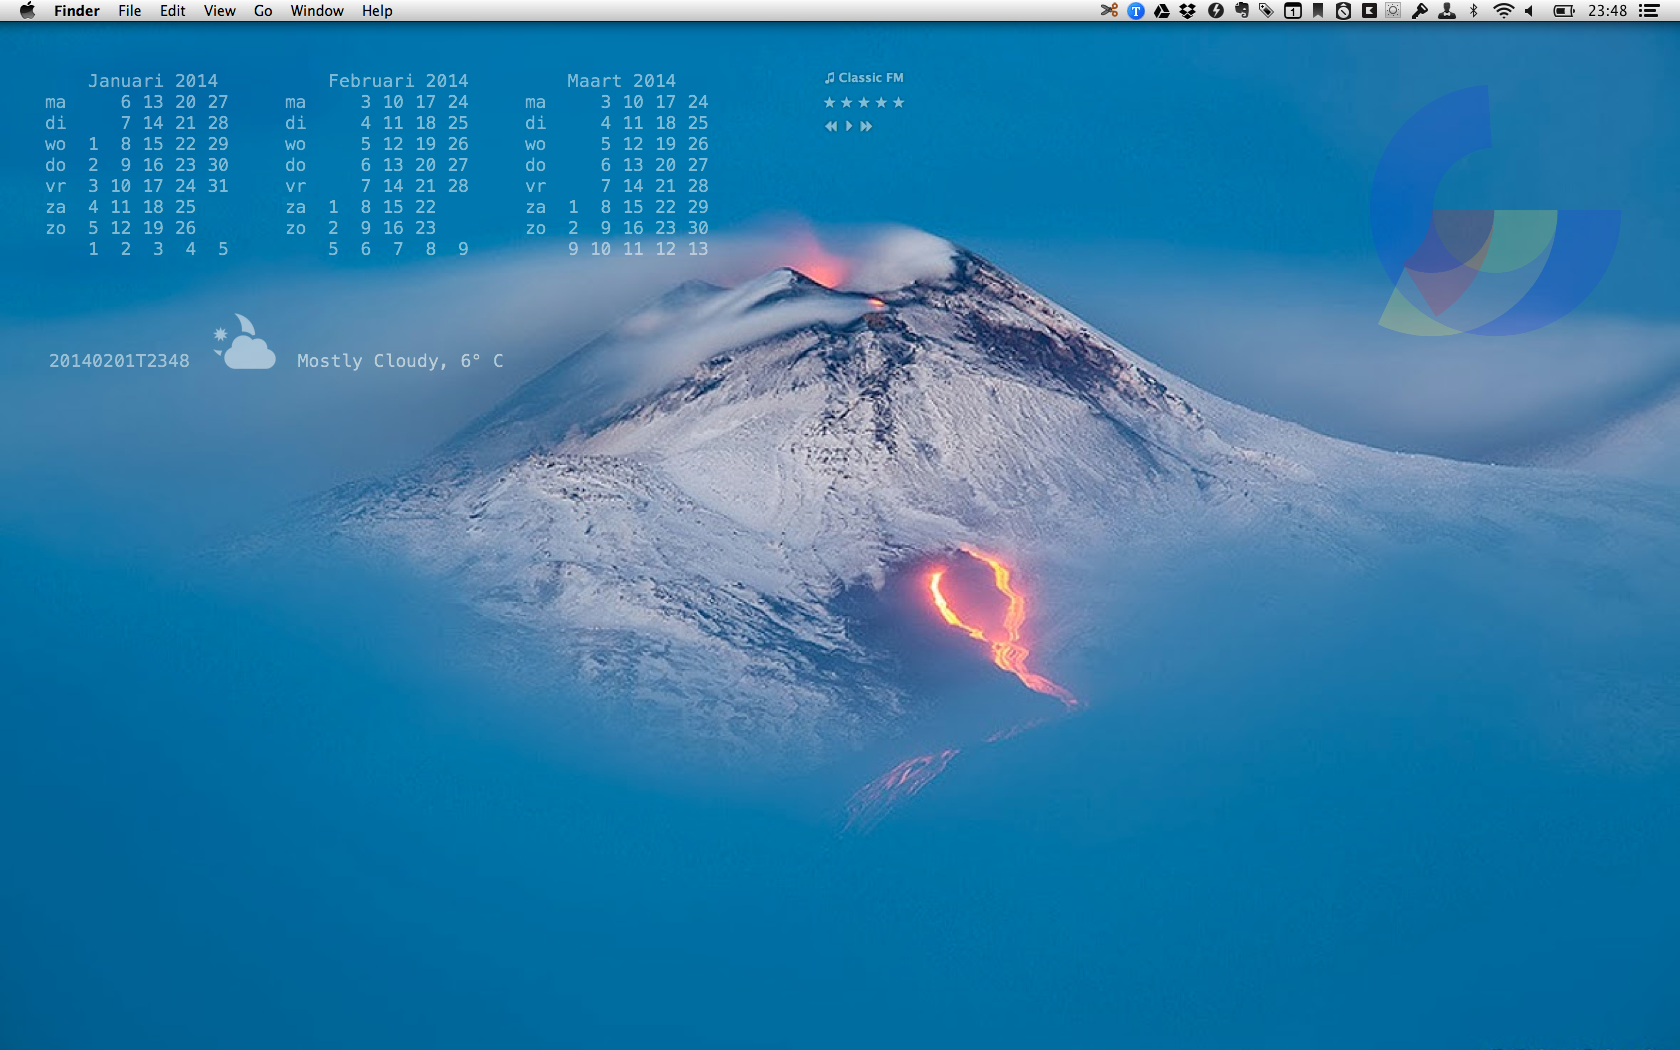 The Smouldering Desktop